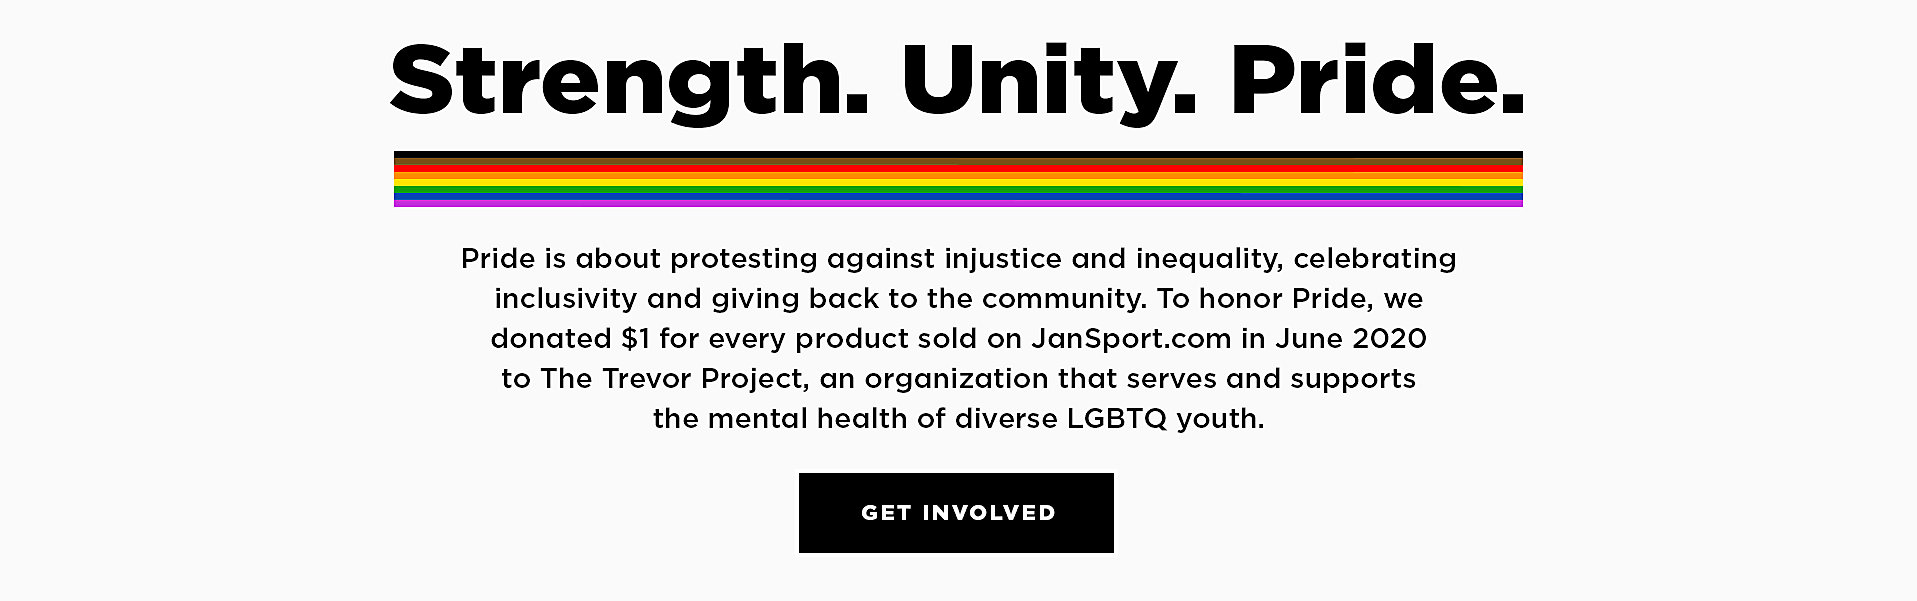 Strength. Unity. Pride. Pride is about protesting against injustice and inequality, celebrating inclusivity and giving back to the community.  To honor Pride, we donated $1 for every product sold on JanSport.com in June 2020 to the Trevor Project, an organization that serves and supports the mental health of diverse LGBQT youth.  Get Involved